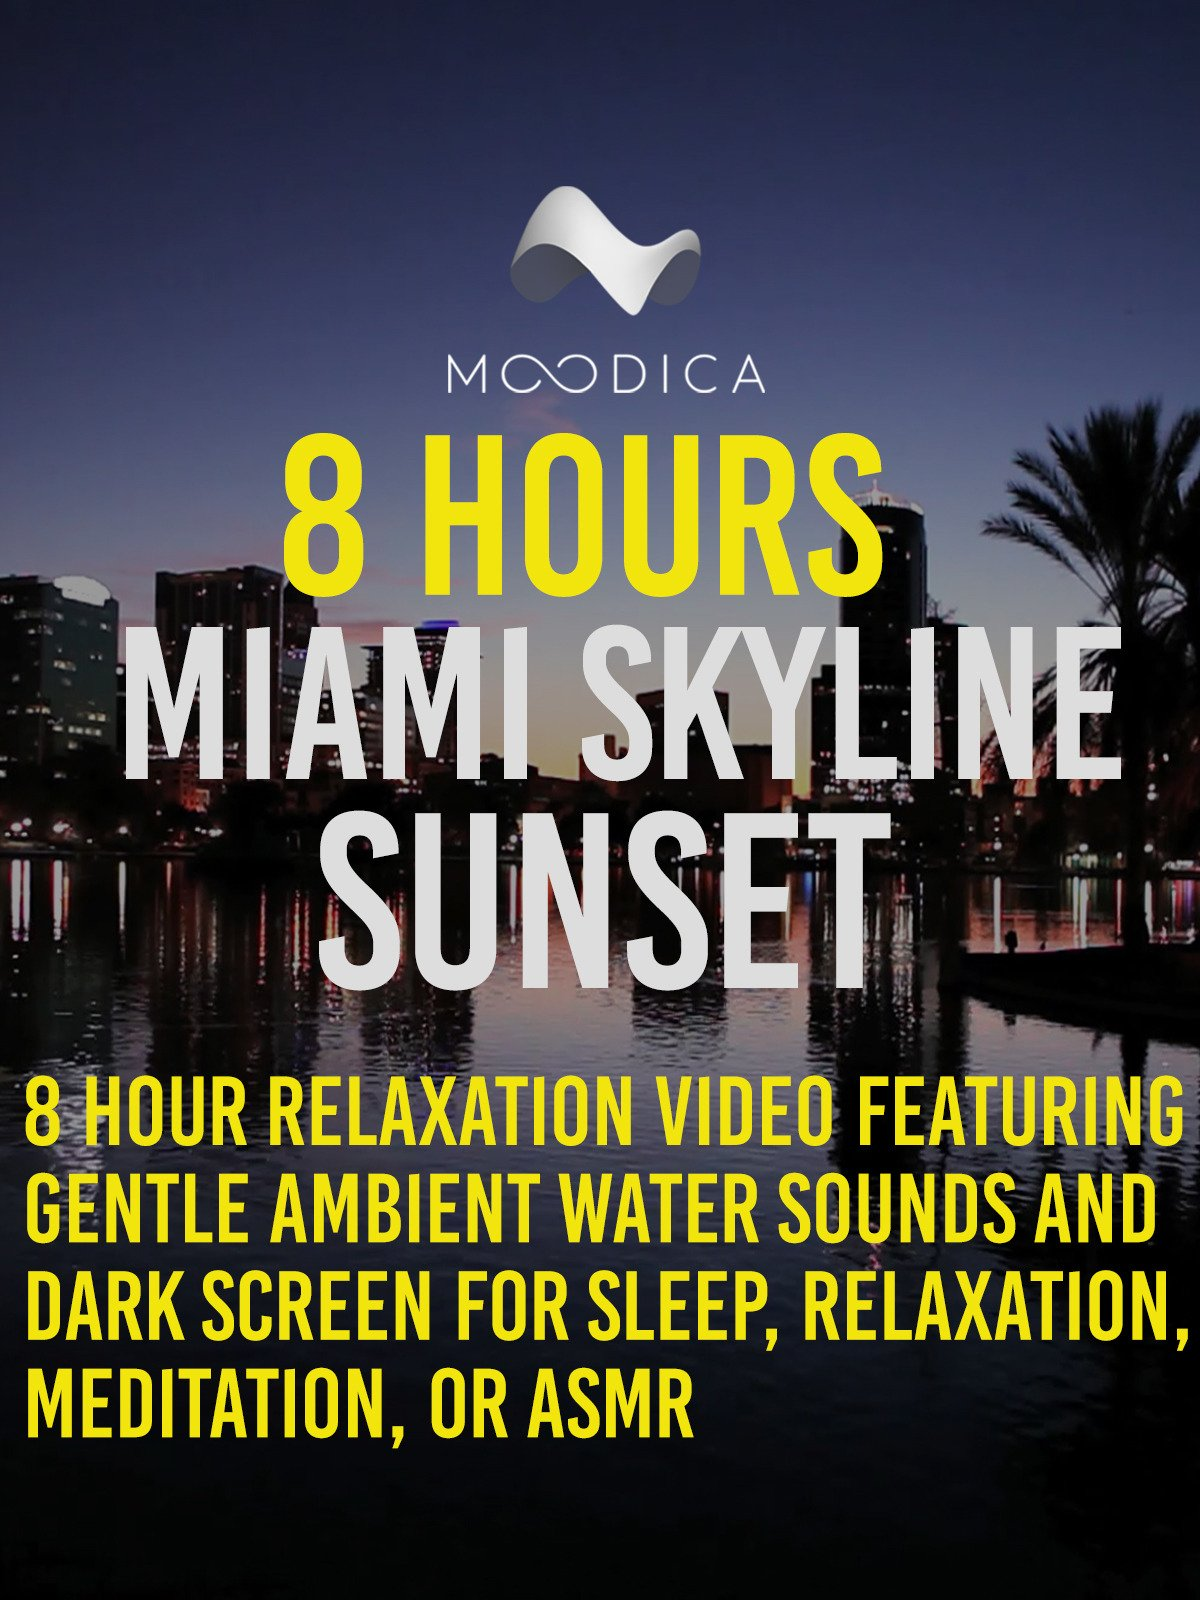 8 Hours: Miami Skyline Sunset: 8 Hour Relaxation Video Featuring Gentle Ambient Water Sounds and Dark Screen for Sleep, Relaxation, Meditation, or ASMR